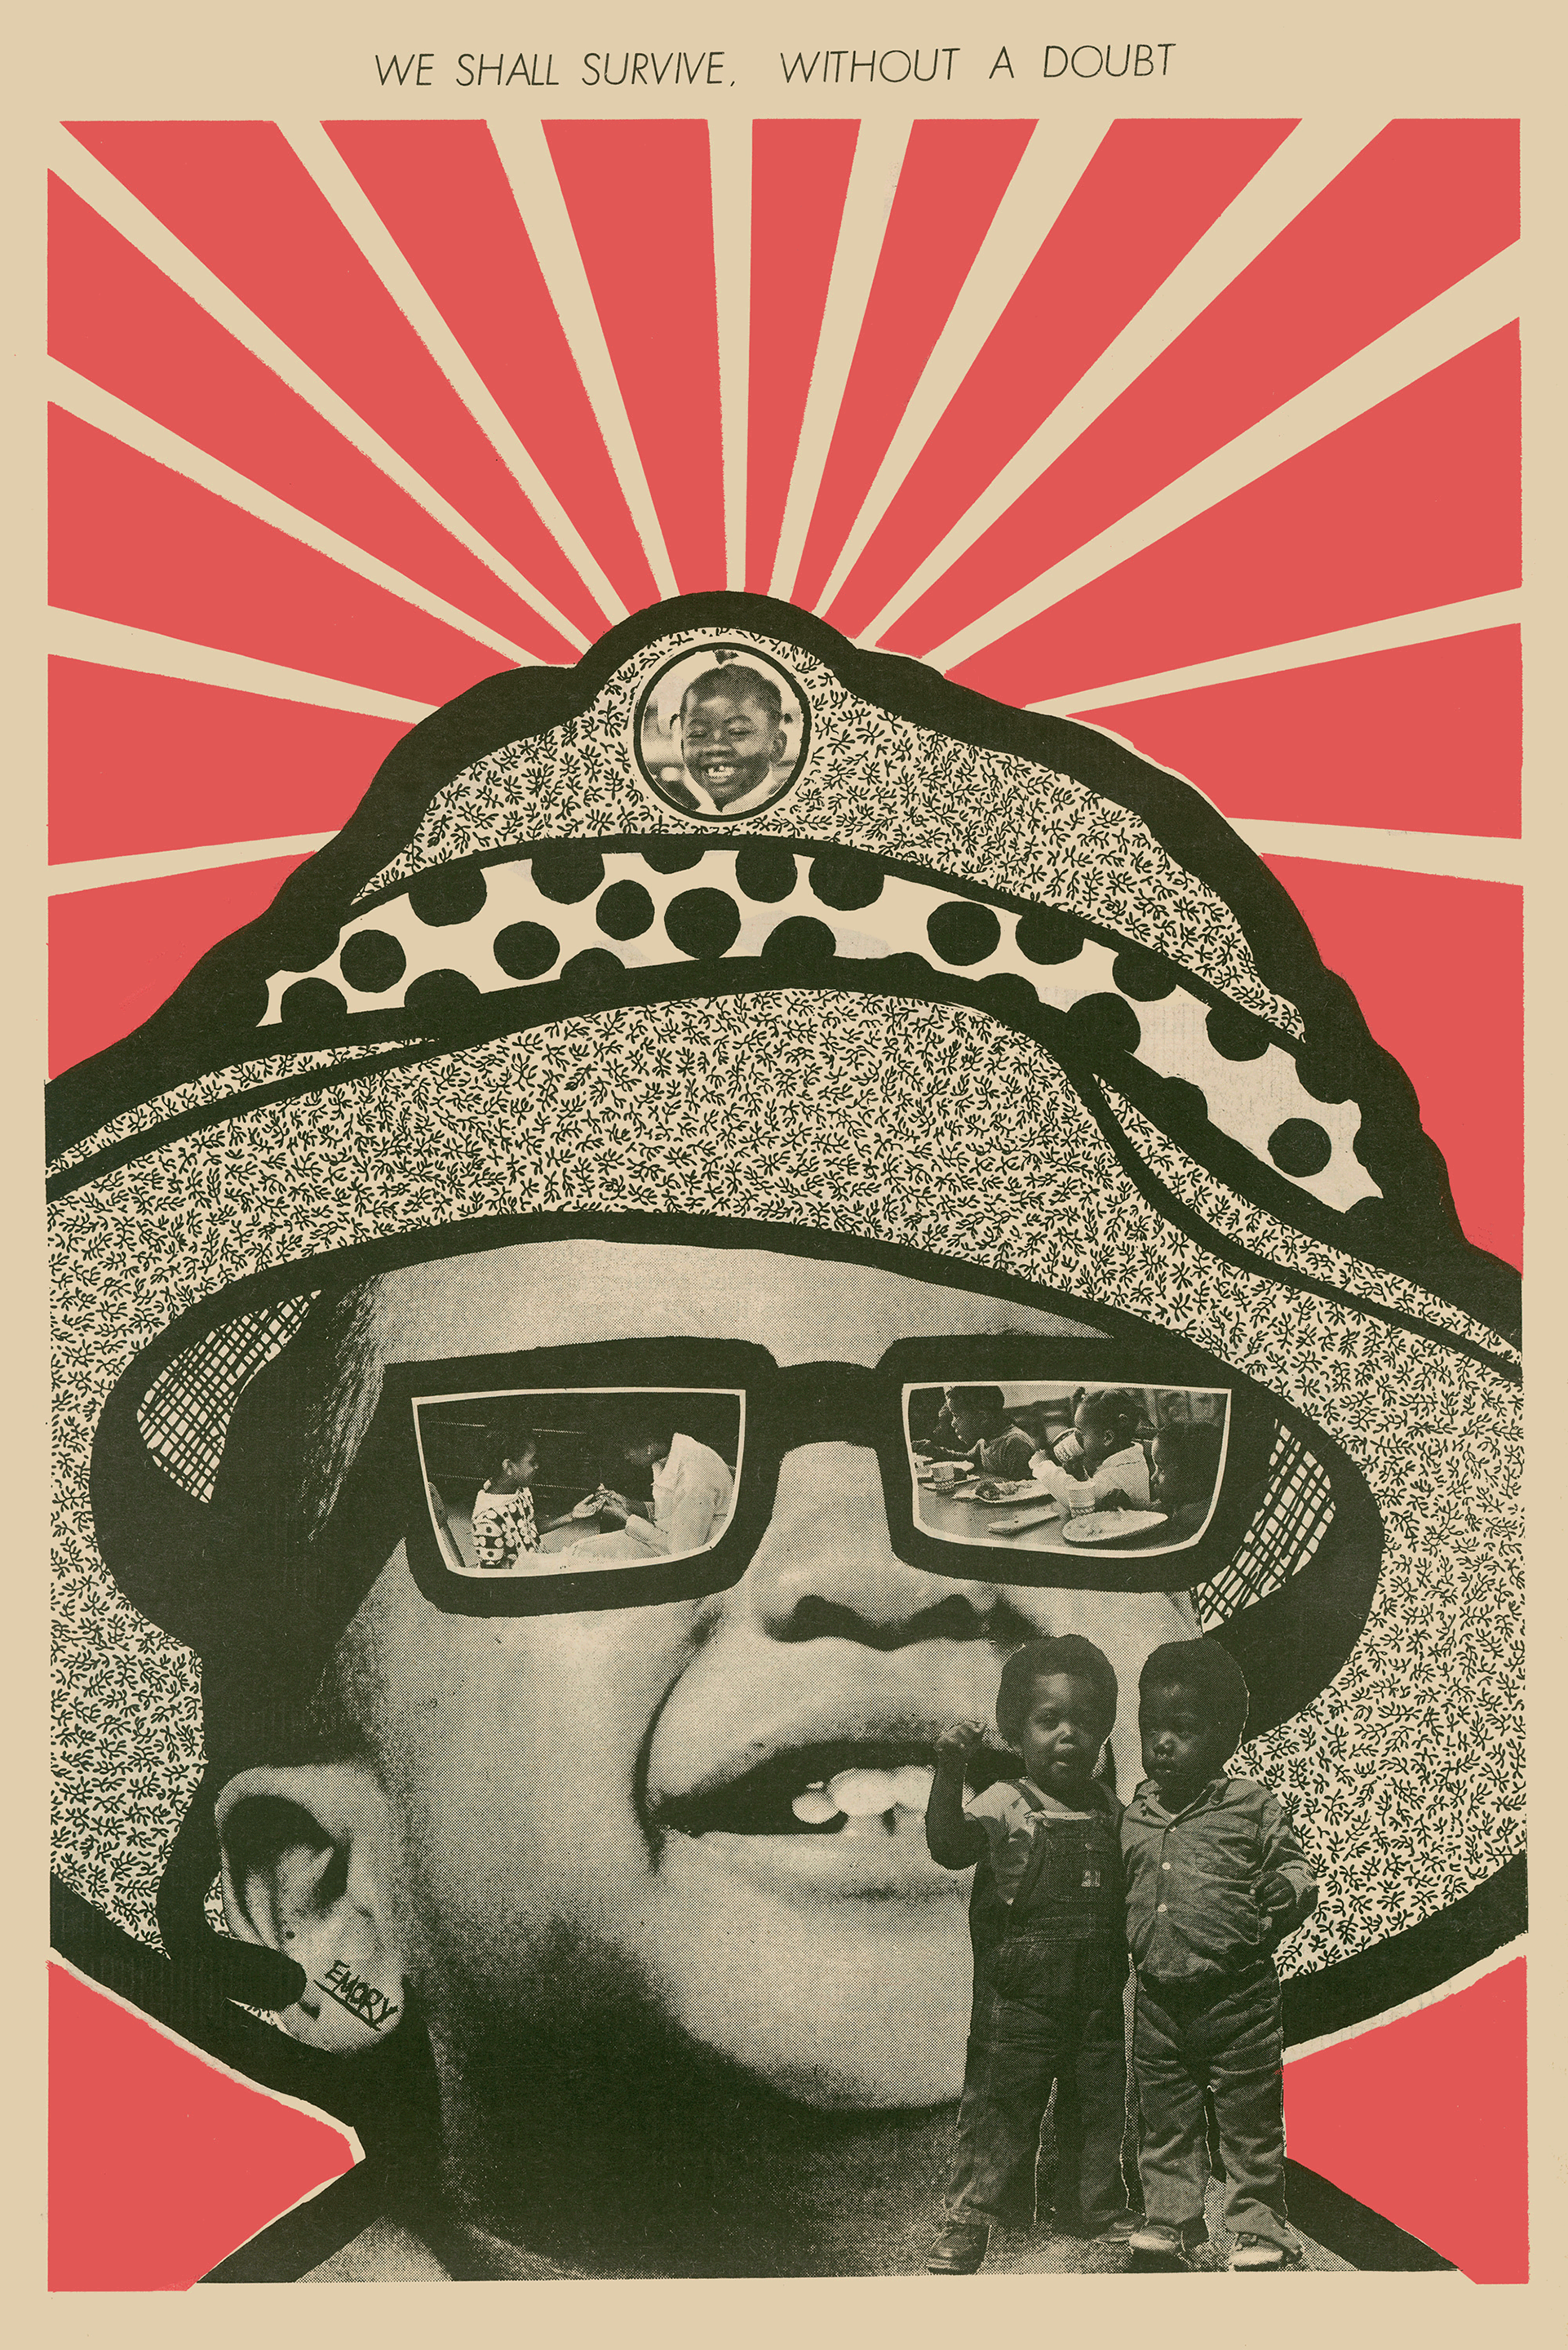 21 August 1971, 'We Shall Survive without a doubt' von Emory Douglas, 1971, Center for the Study of Political Graphics (Culver City, USA), Copyright: Emory Douglas /ARS NY, Photo credit: Courtesy of Emory Douglas/Art Resource, NY